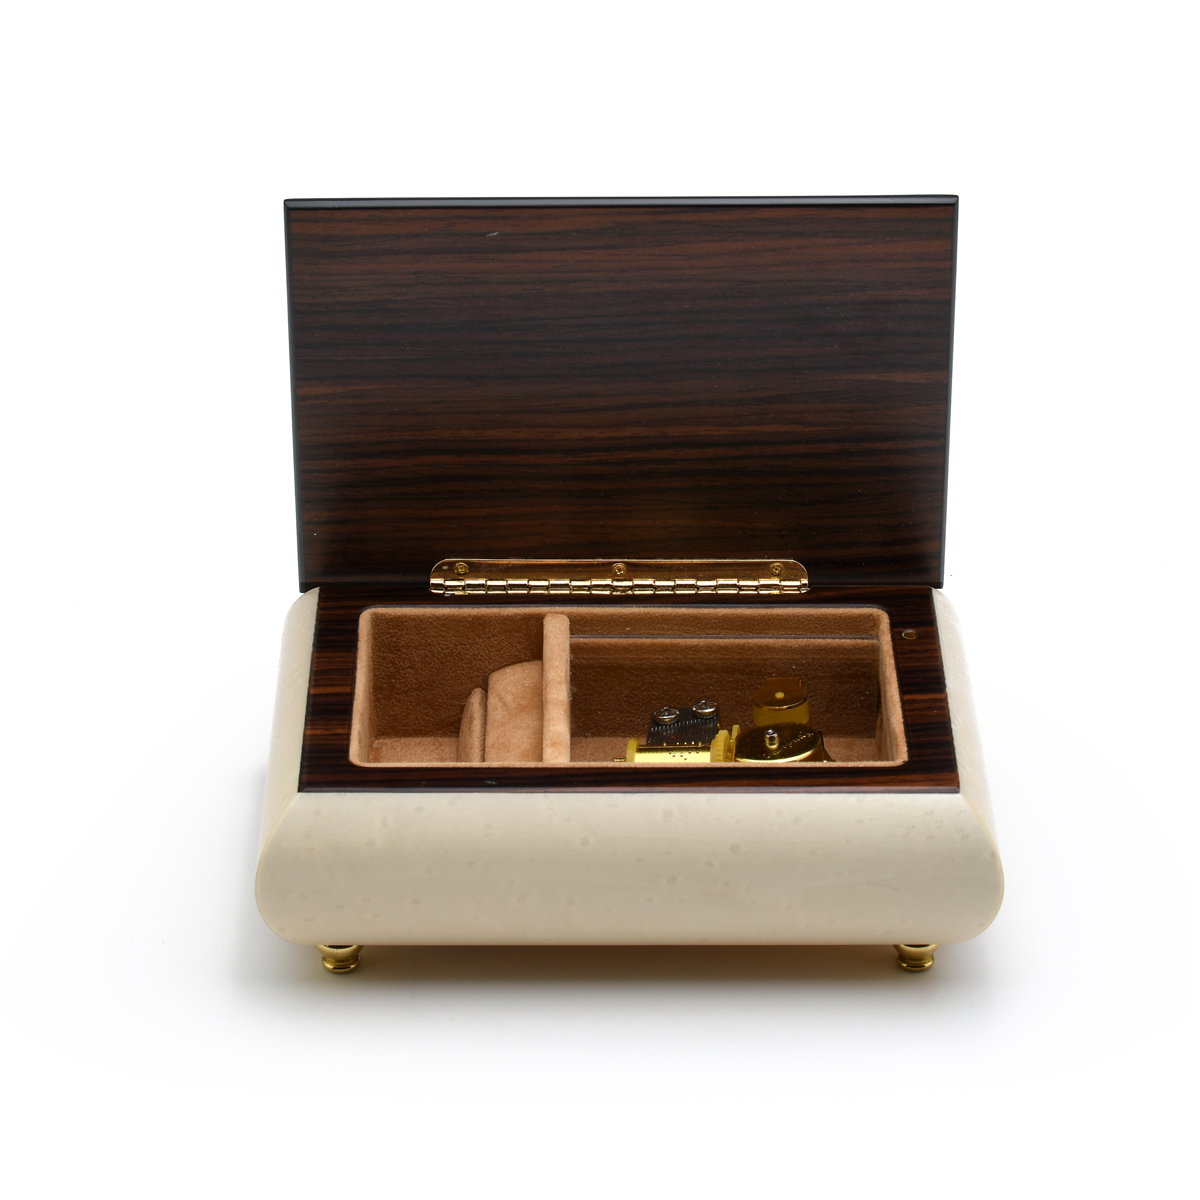 Incredible 30 Note Handcrafted White Italian Music Box with Lilies Wood Inlay